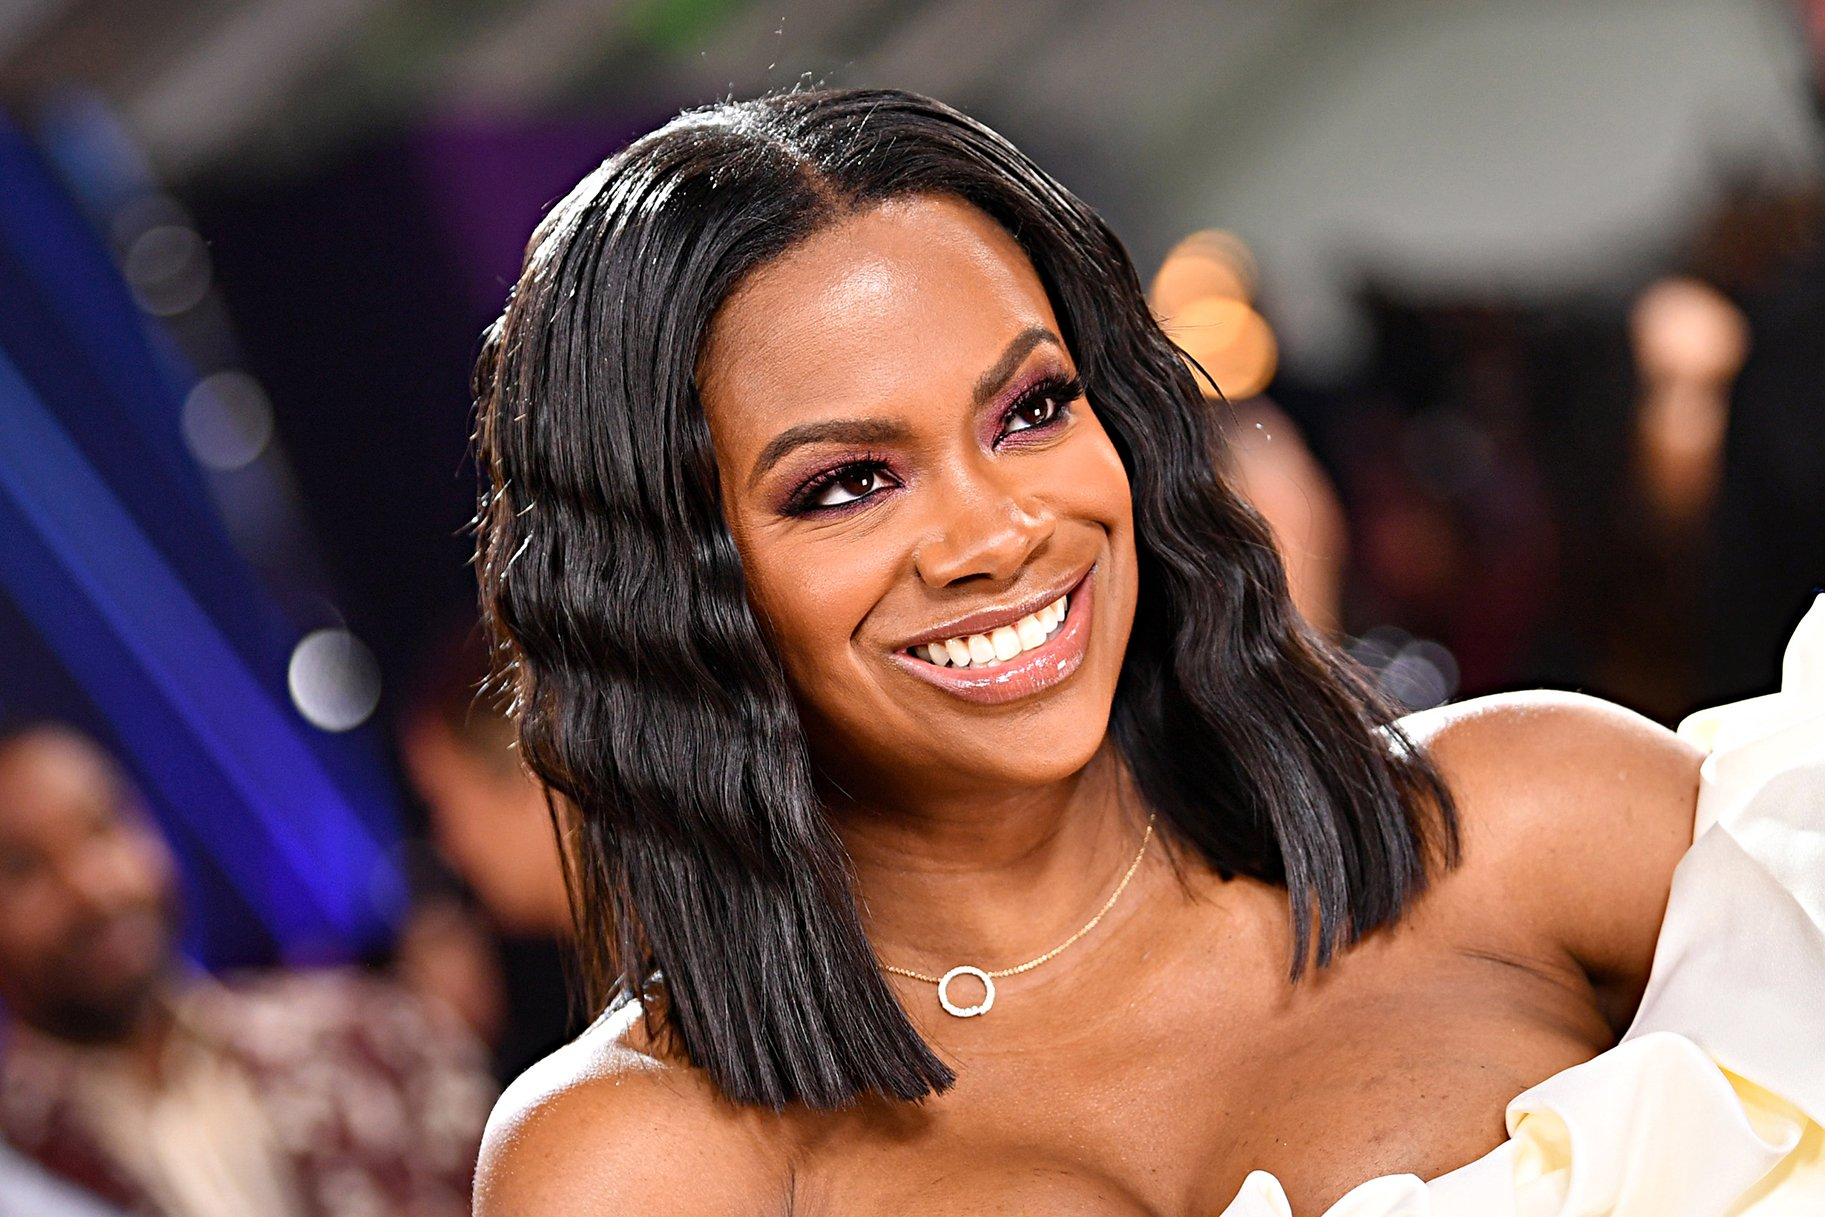 Kandi Burruss Wishes A Happy Birthday To A Friend Who Is An Example Of A Real Boss